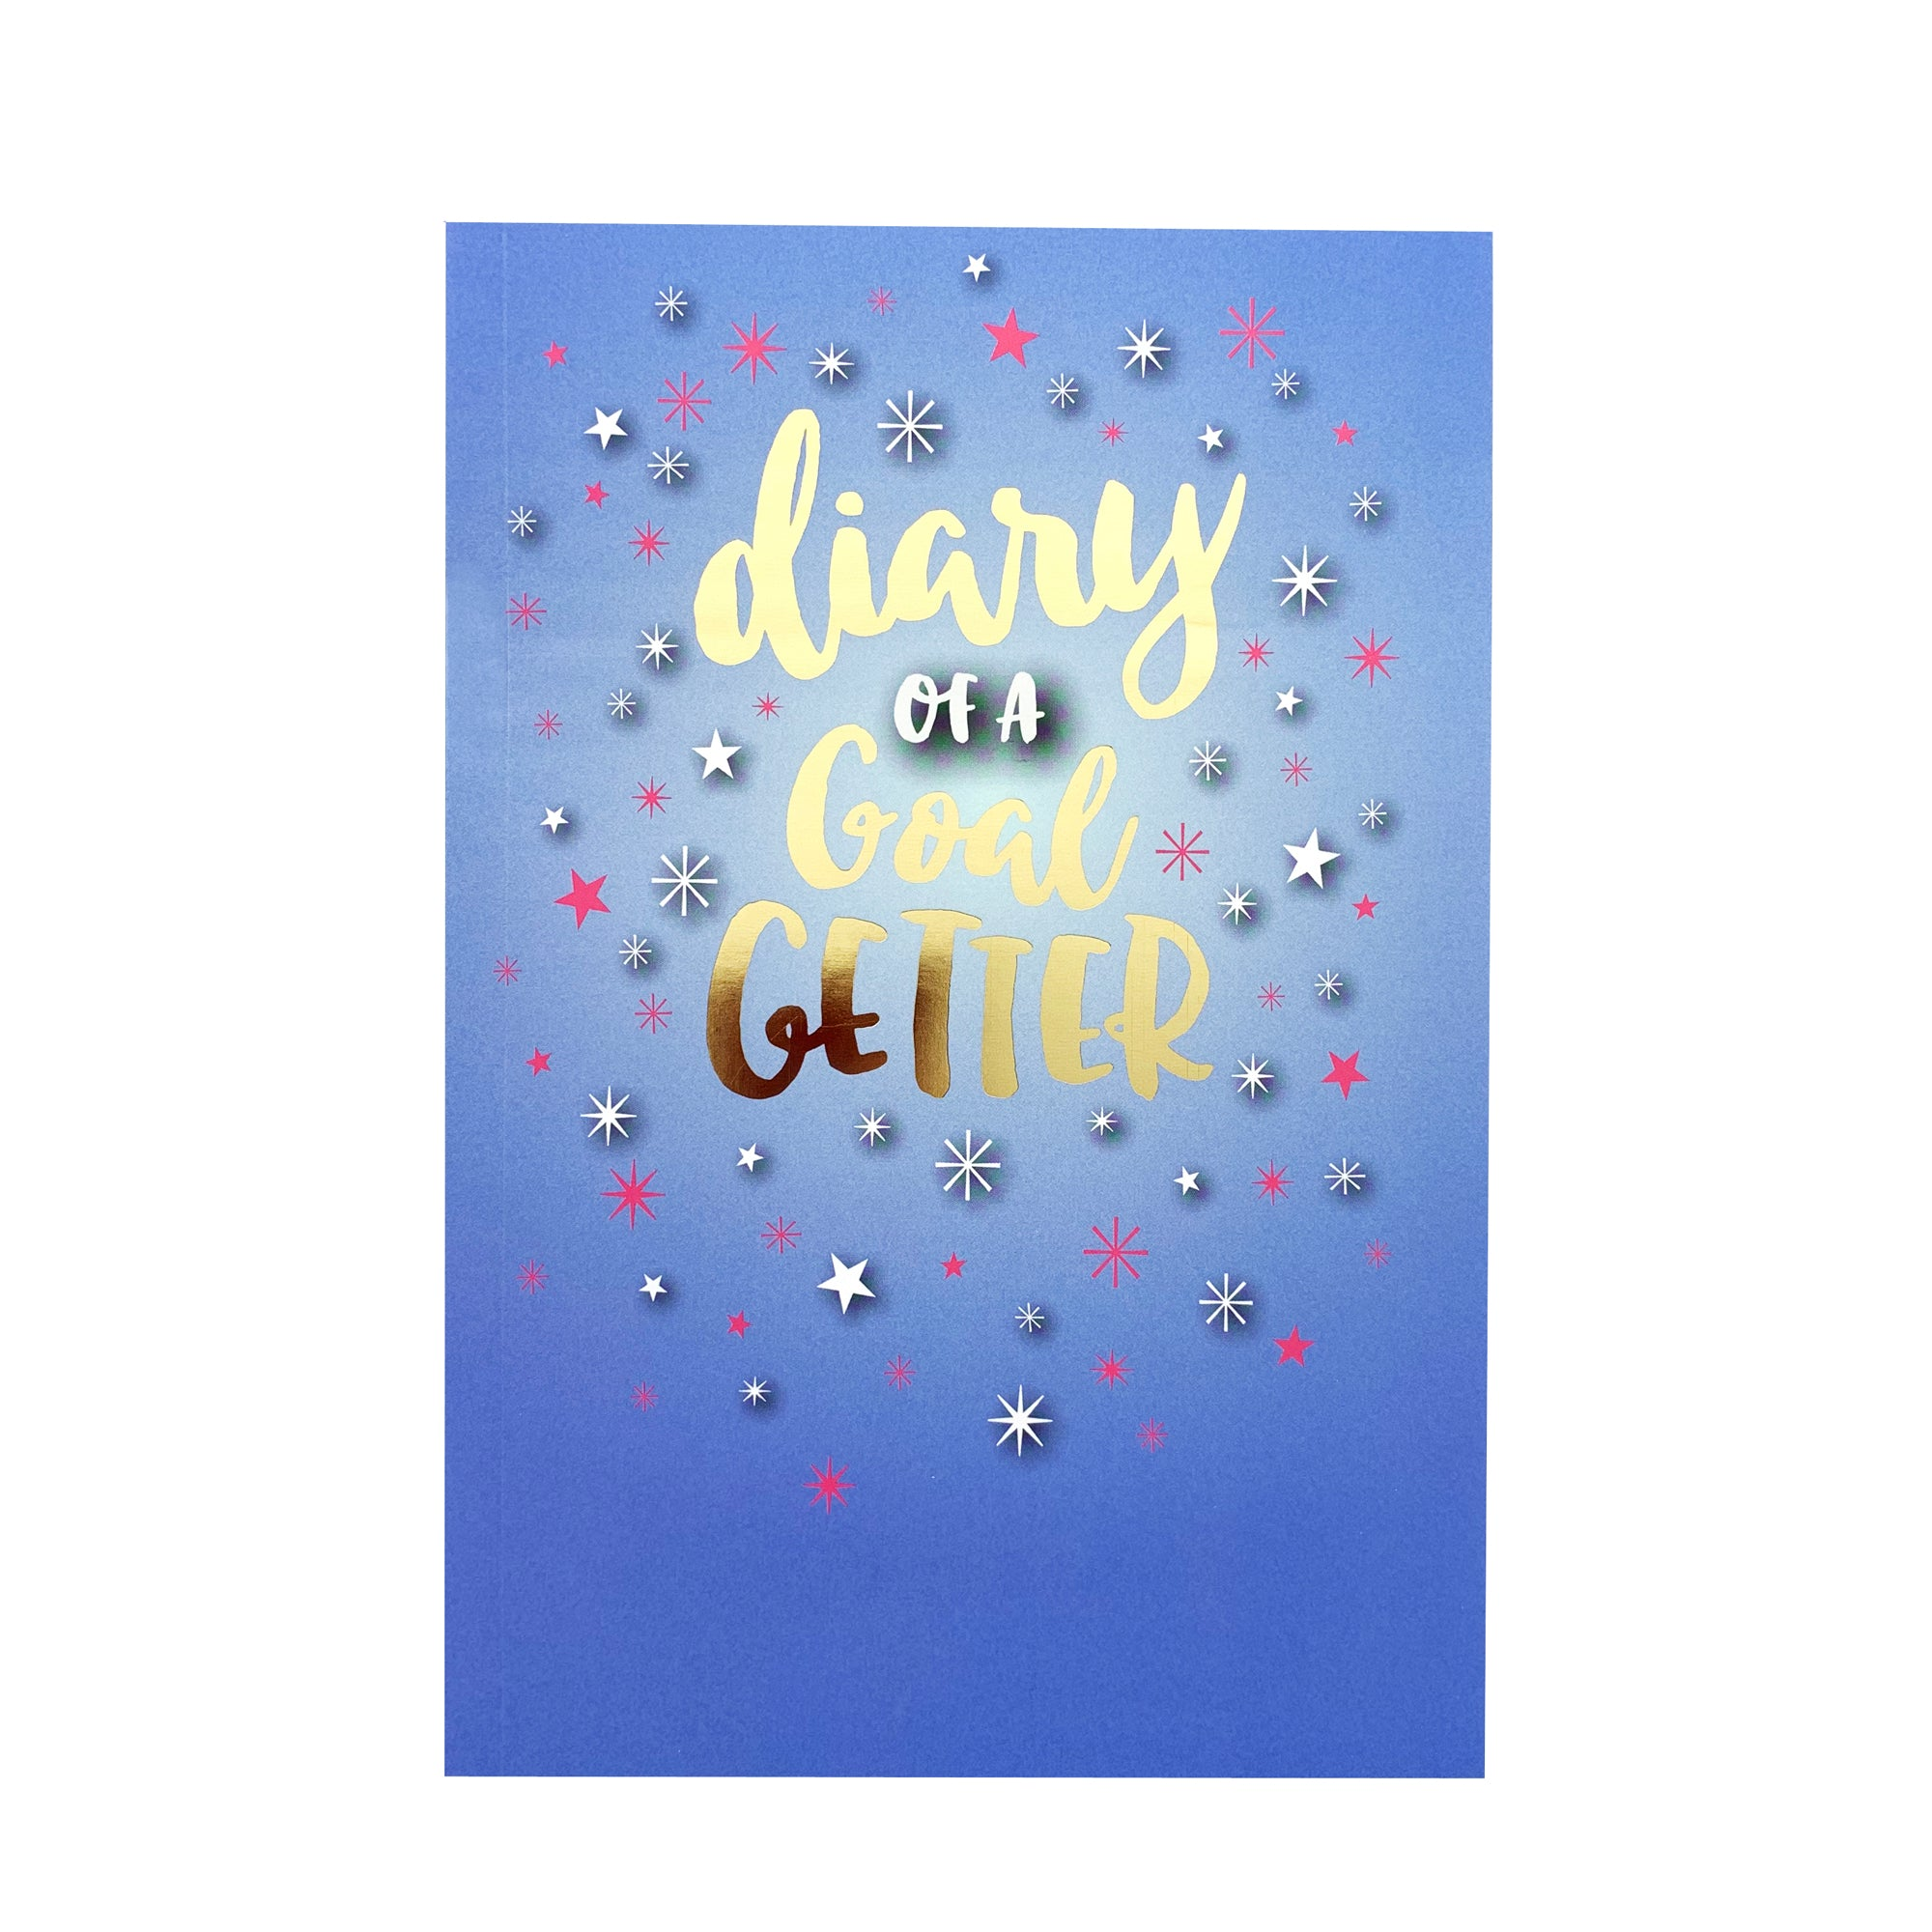 Notebook - Diary Goal Getter